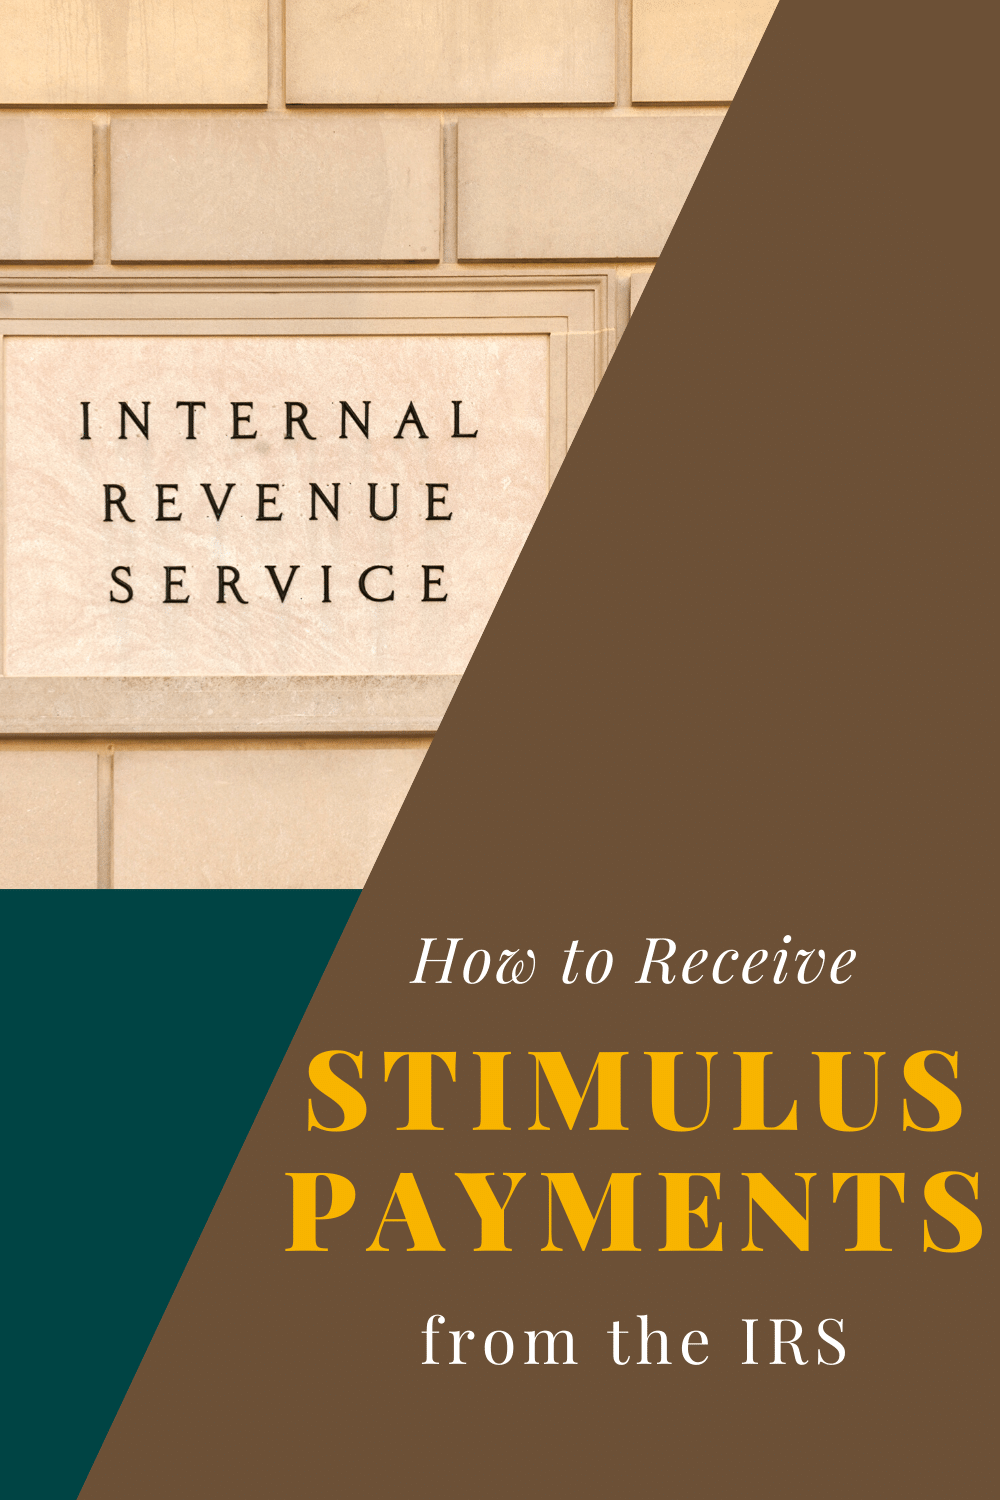 How to Receive Stimulus Payments from the IRS